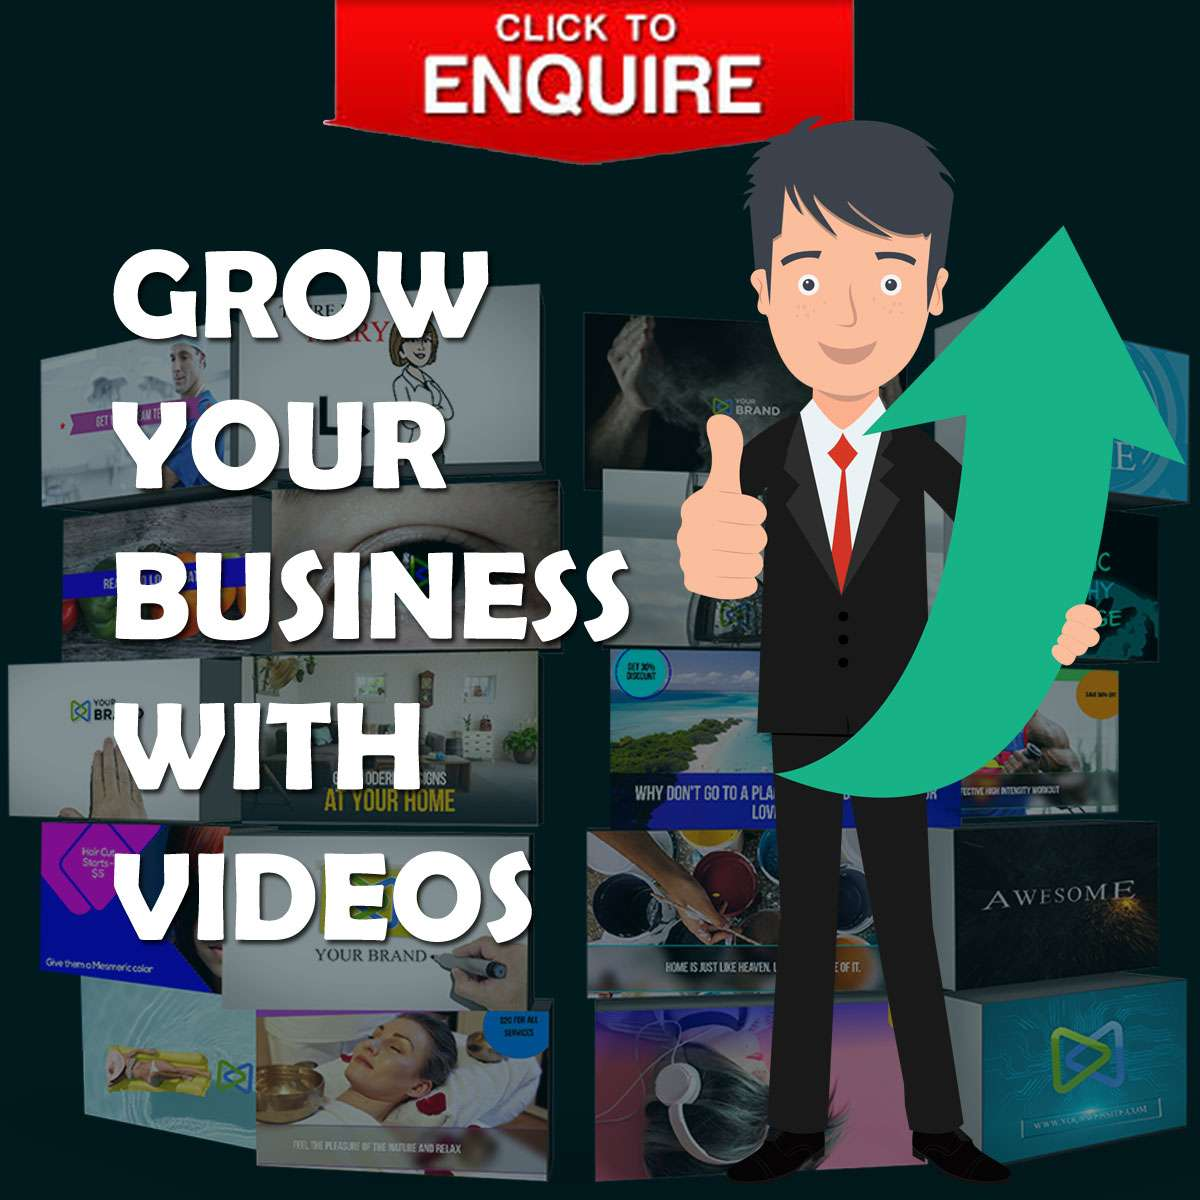 Grow Your Business with Videos